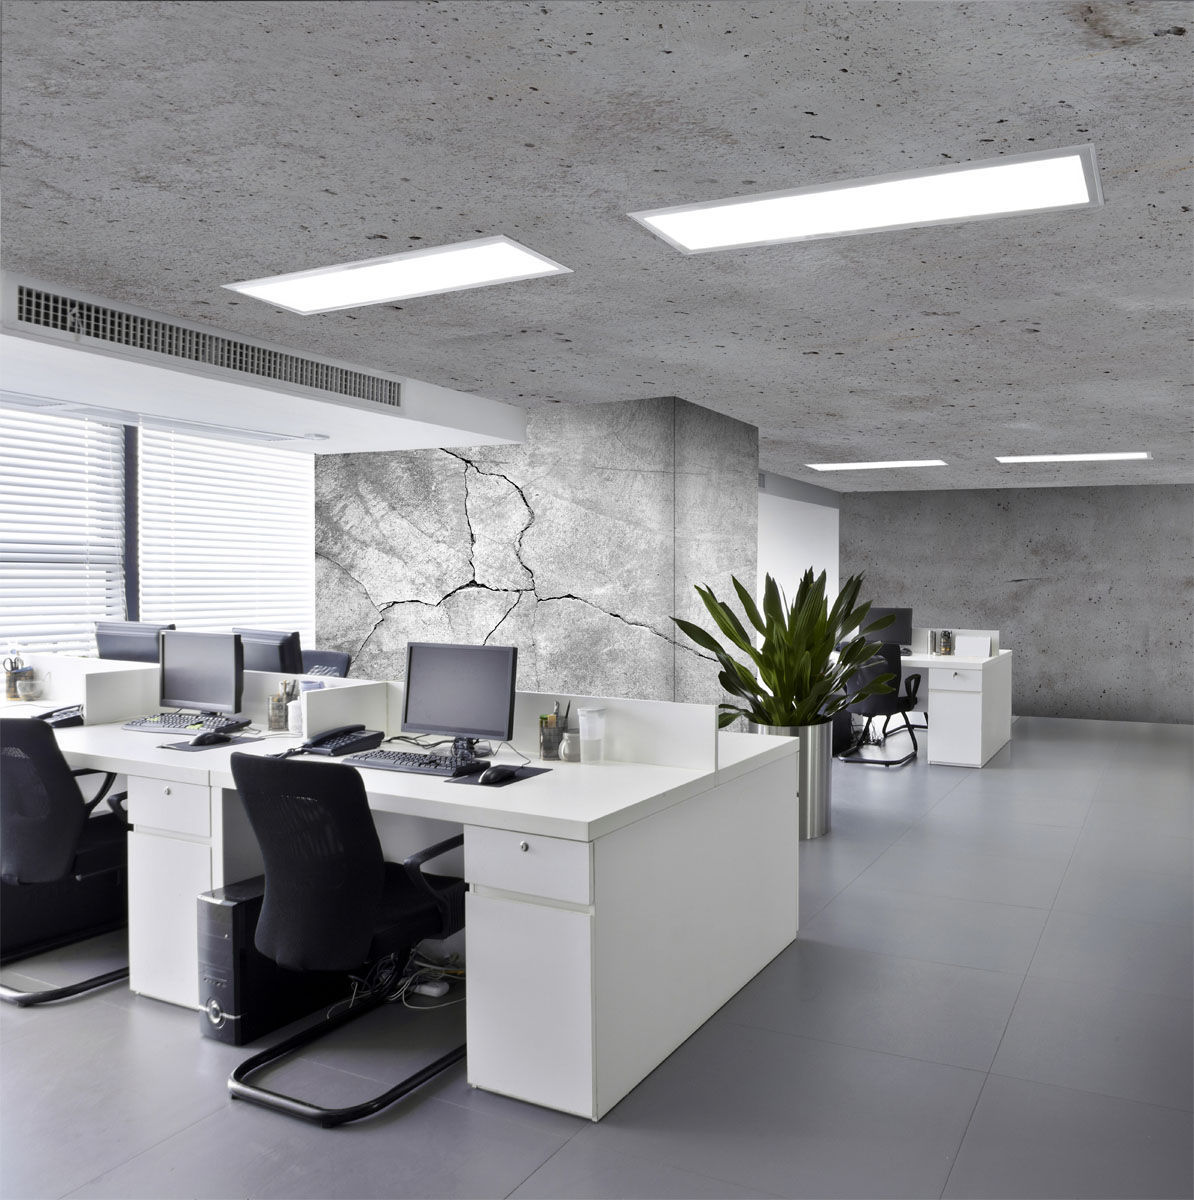 Canvas Stretch Ceiling / Acoustic / Decorative / Water Repellent   EFFET  BETON